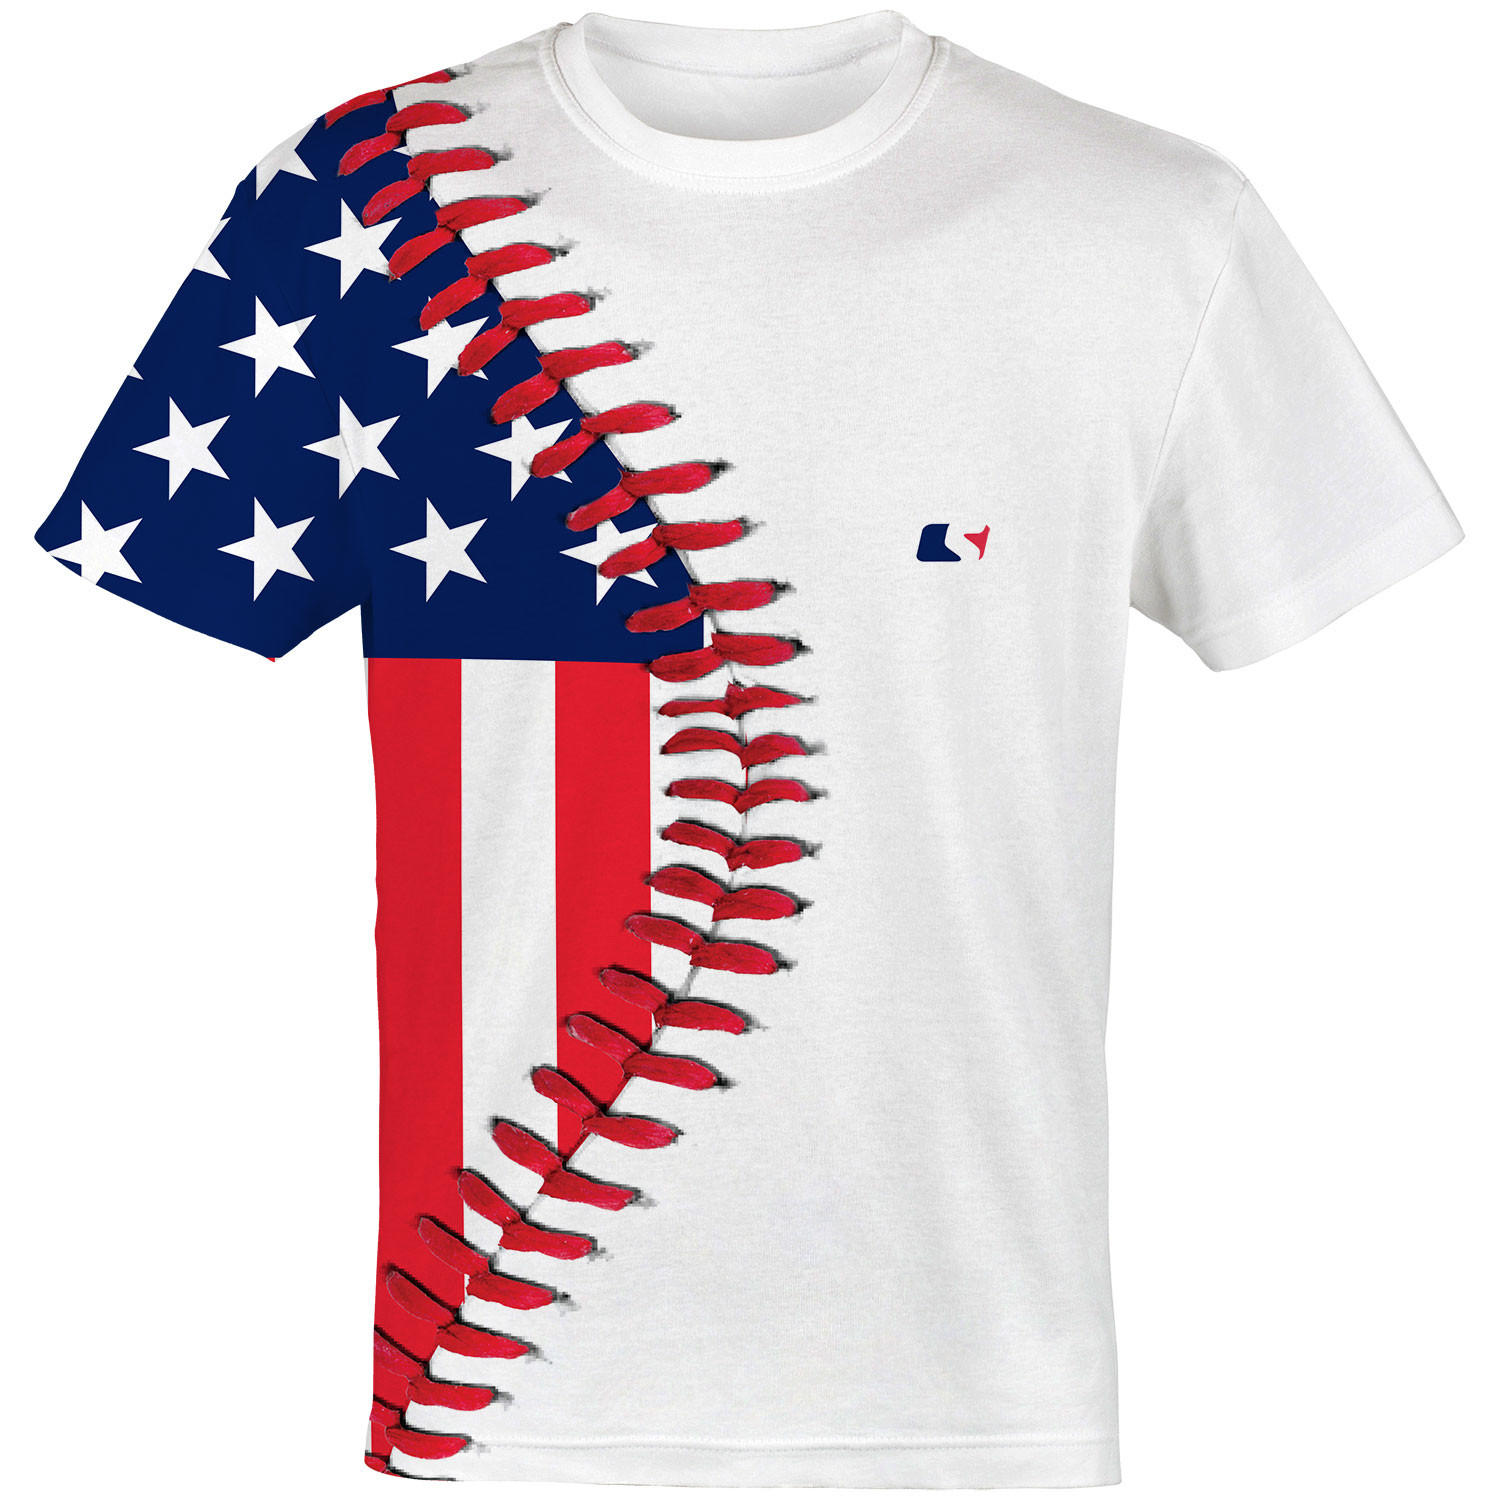 Baseball Lace Usa Baseball Jersey From Sleefs Chase ⚾️⚾️🇺🇸🇺🇸